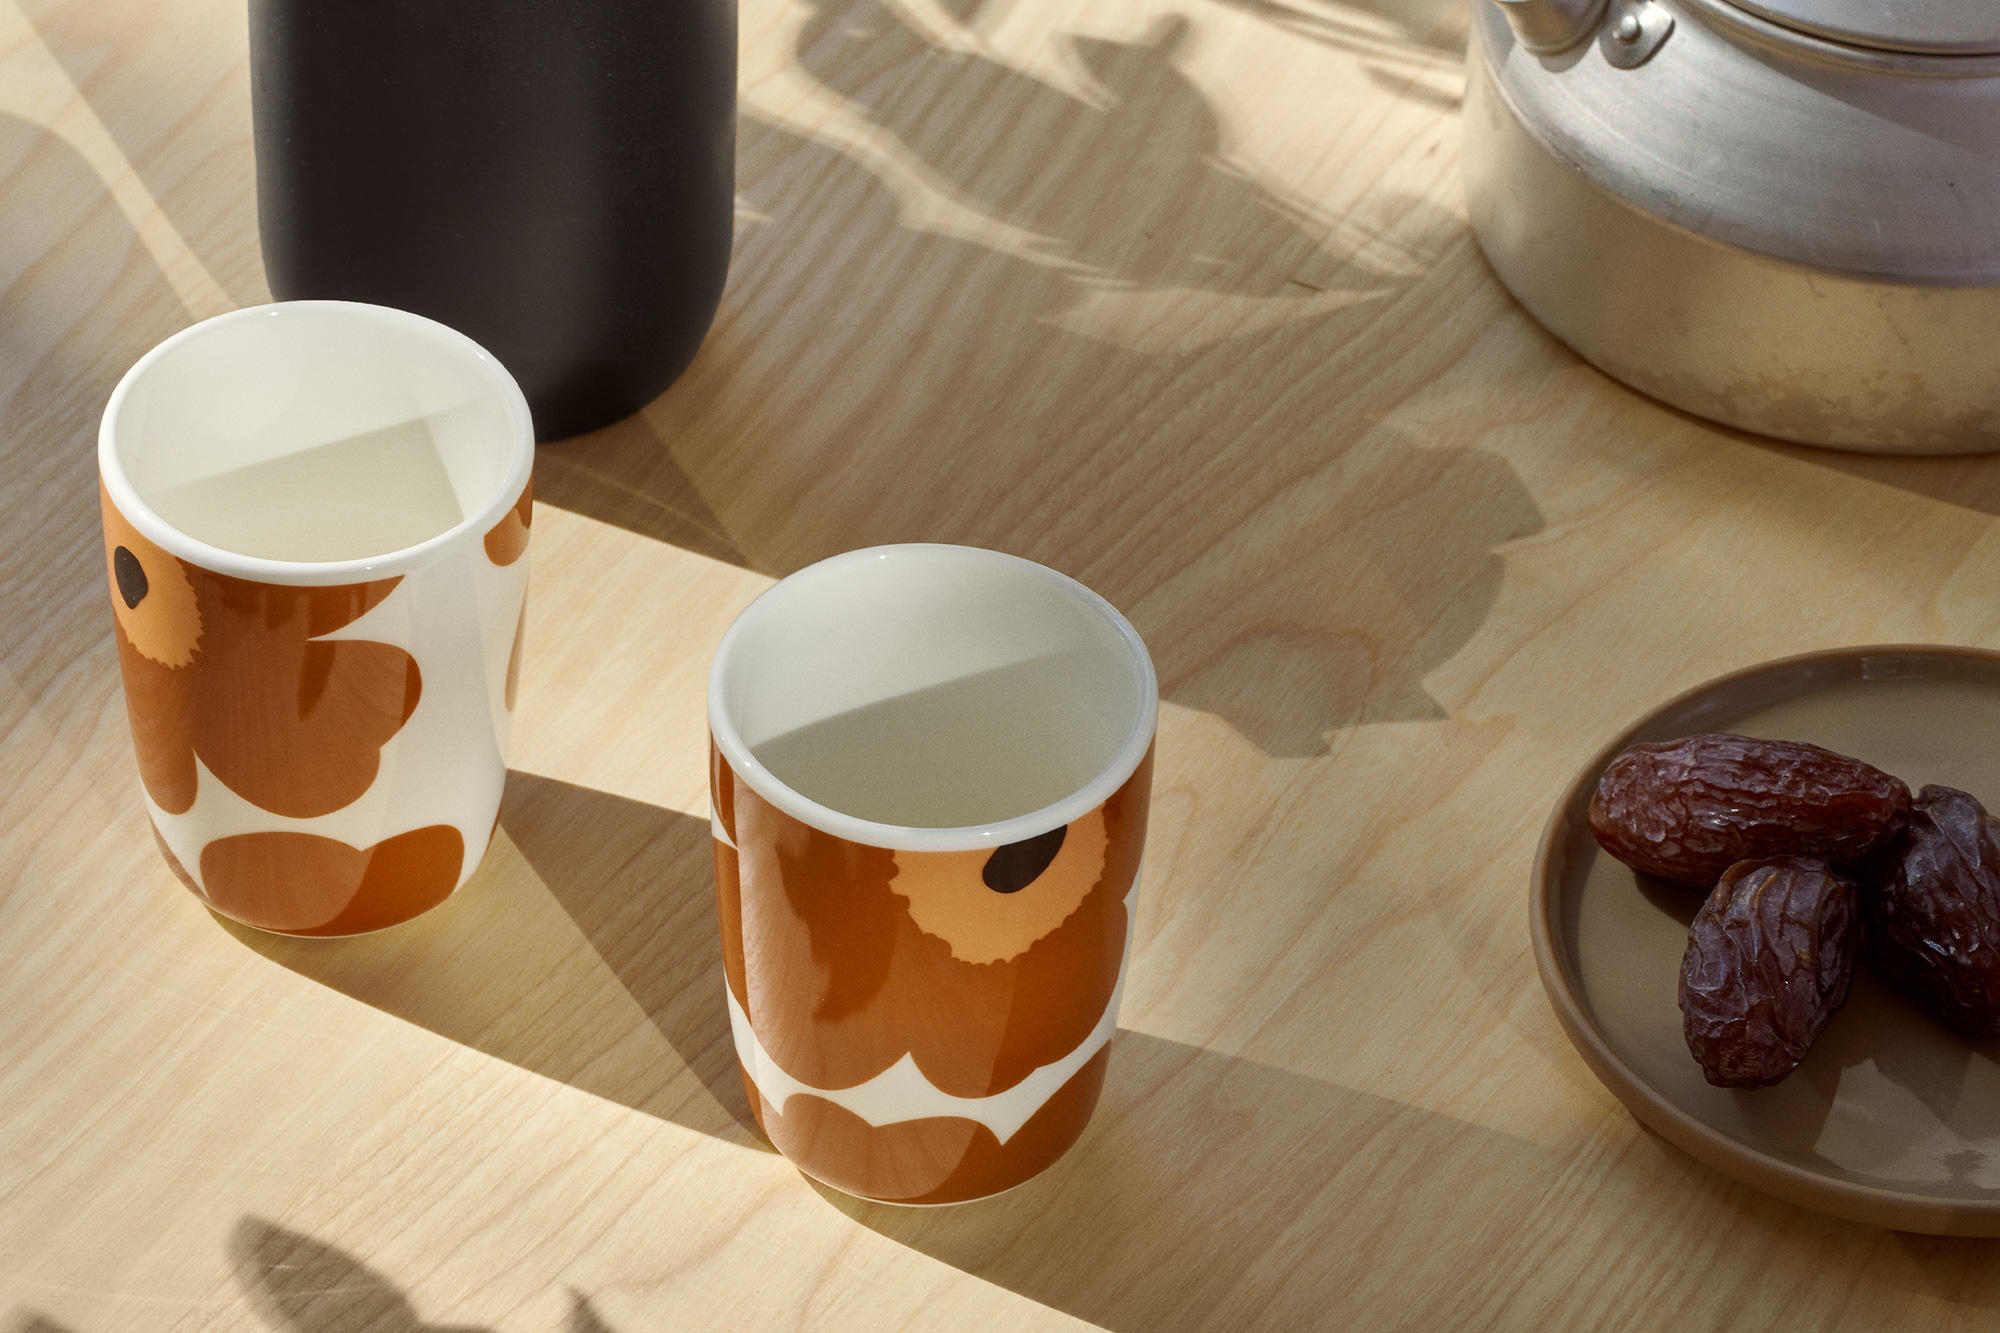 8.7- 【日本限定】Set of Unikko Cups without Handles